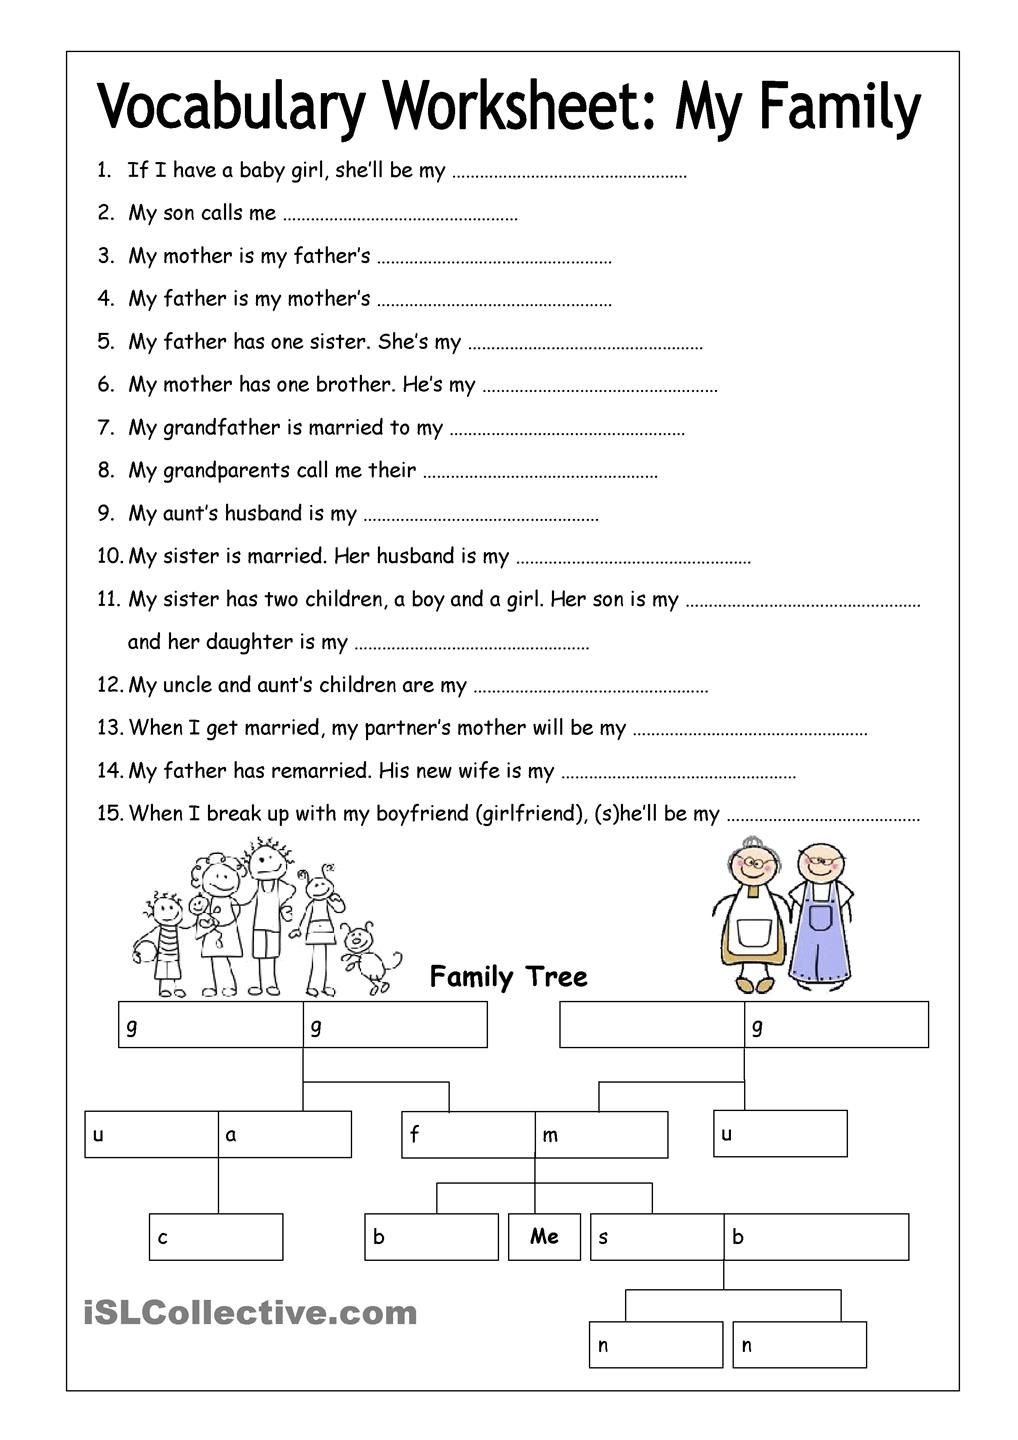 Vocabulary Worksheet My Family (Medium) English 6th